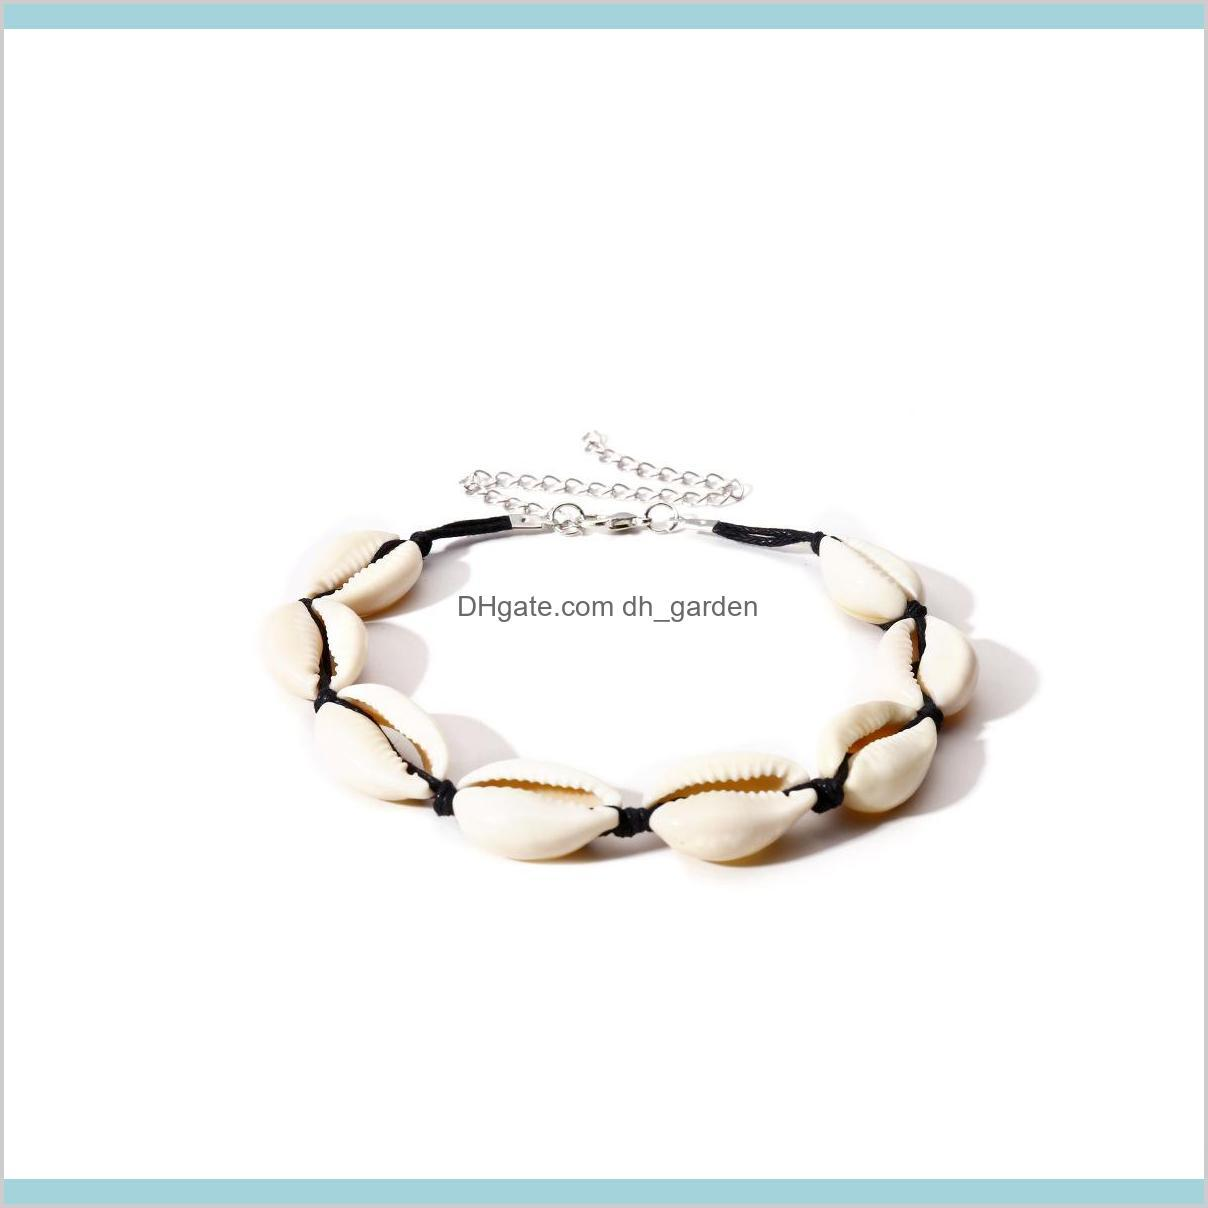 natural shell bracelet anklet chain jewelry women bracelets charm bracelet new fashion bracelet fashion jewelry 20201